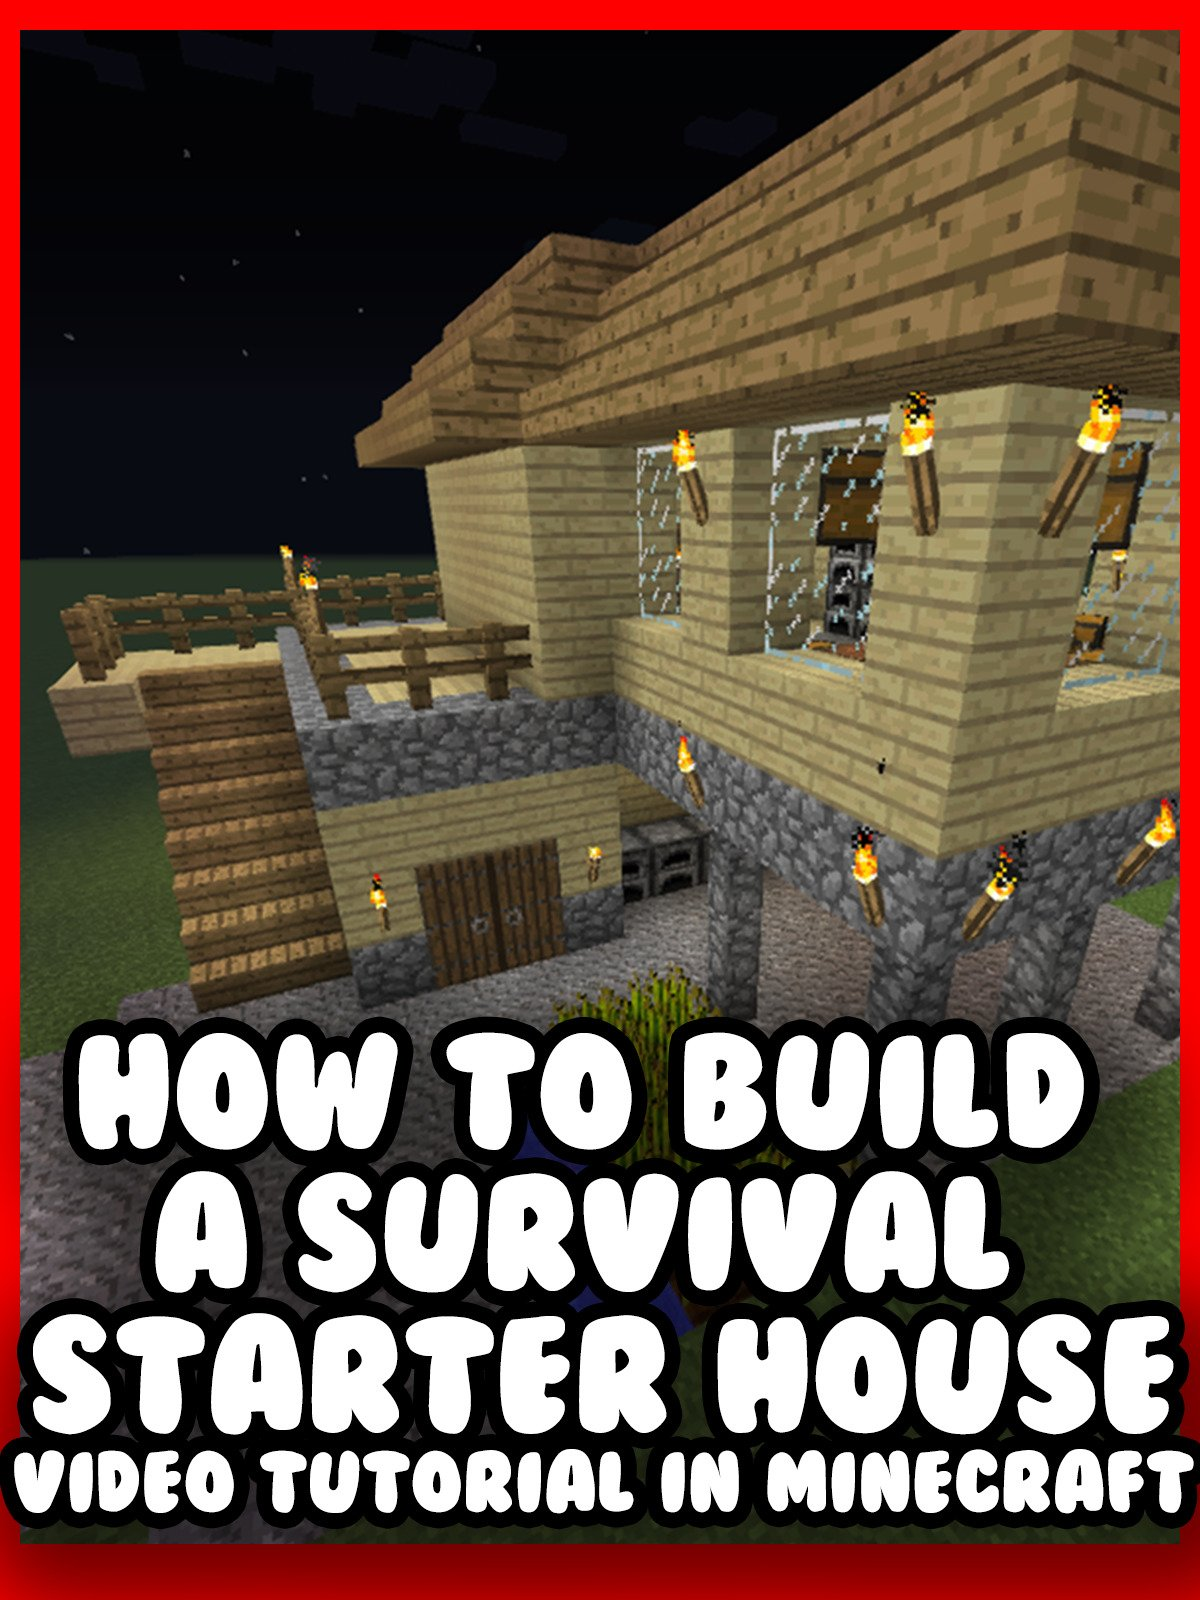 Clip: How to Build a Survival Starter House